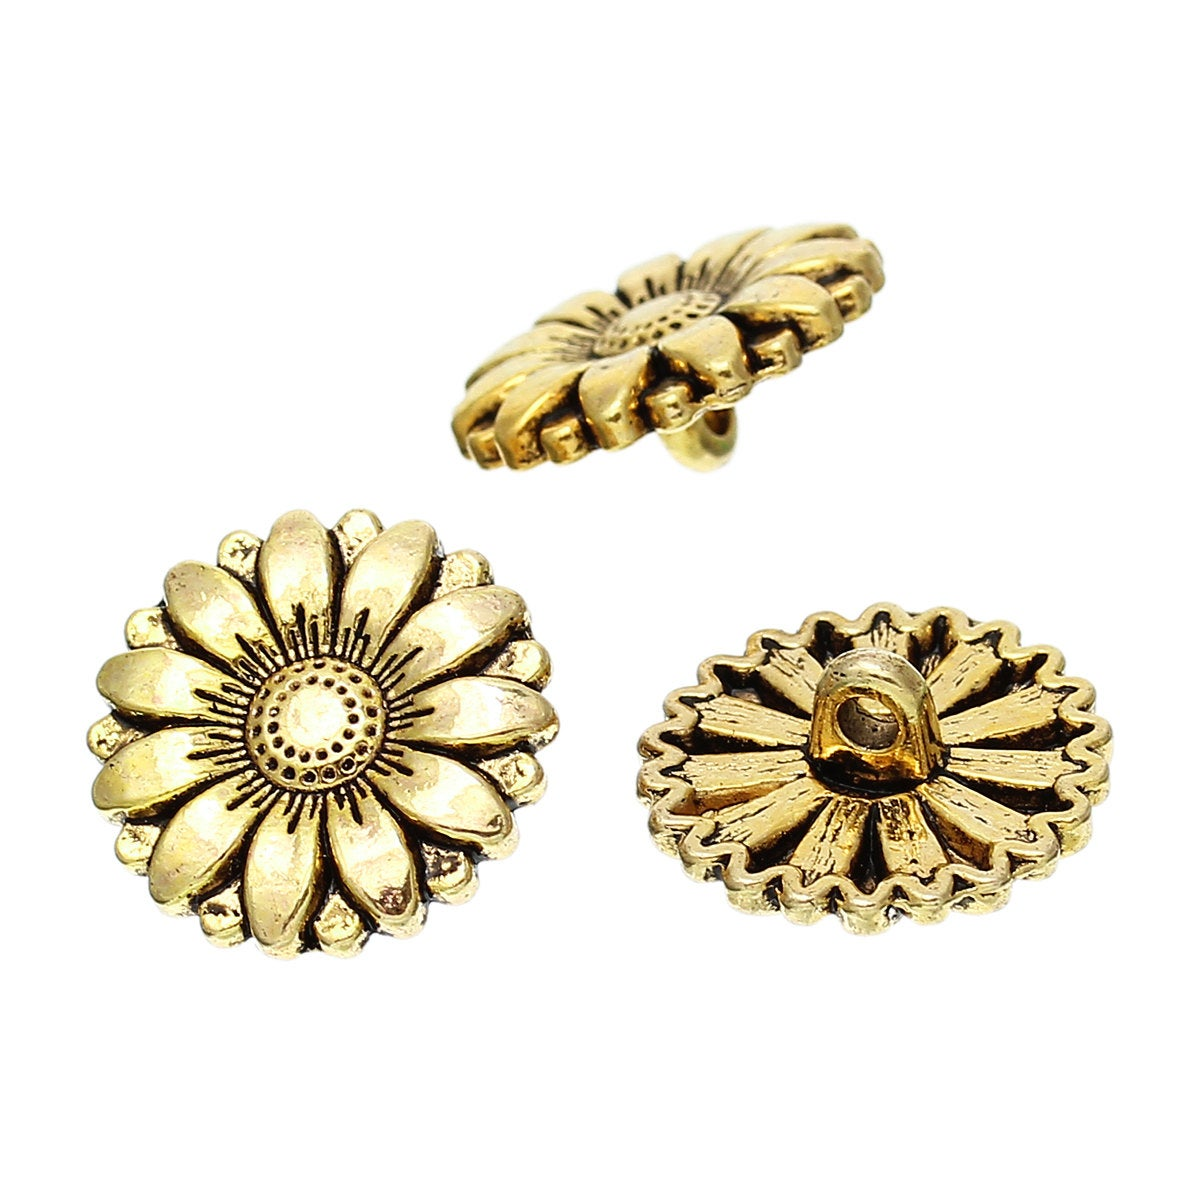 5 Antiqued Silver or Gold Metal Buttons 18mm Round